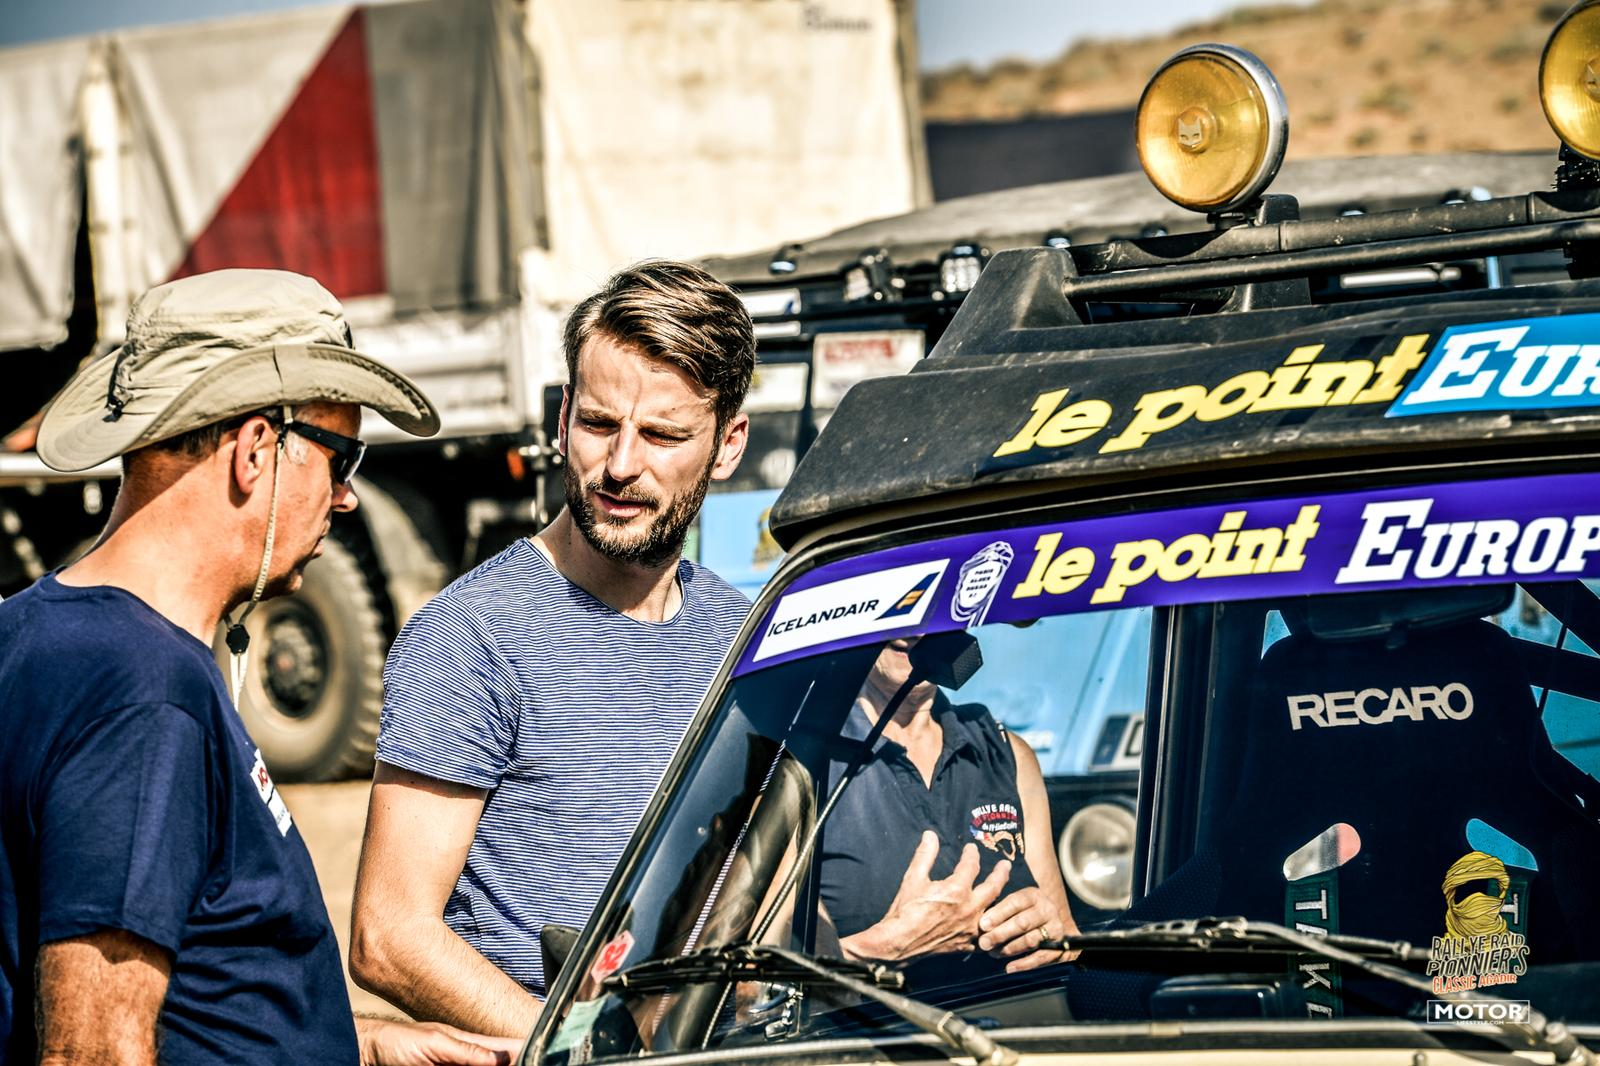 ROMAIN GRABOWSKI: RETRACING HIS FATHER'S MOTORSPORT FOOTSTEPS…